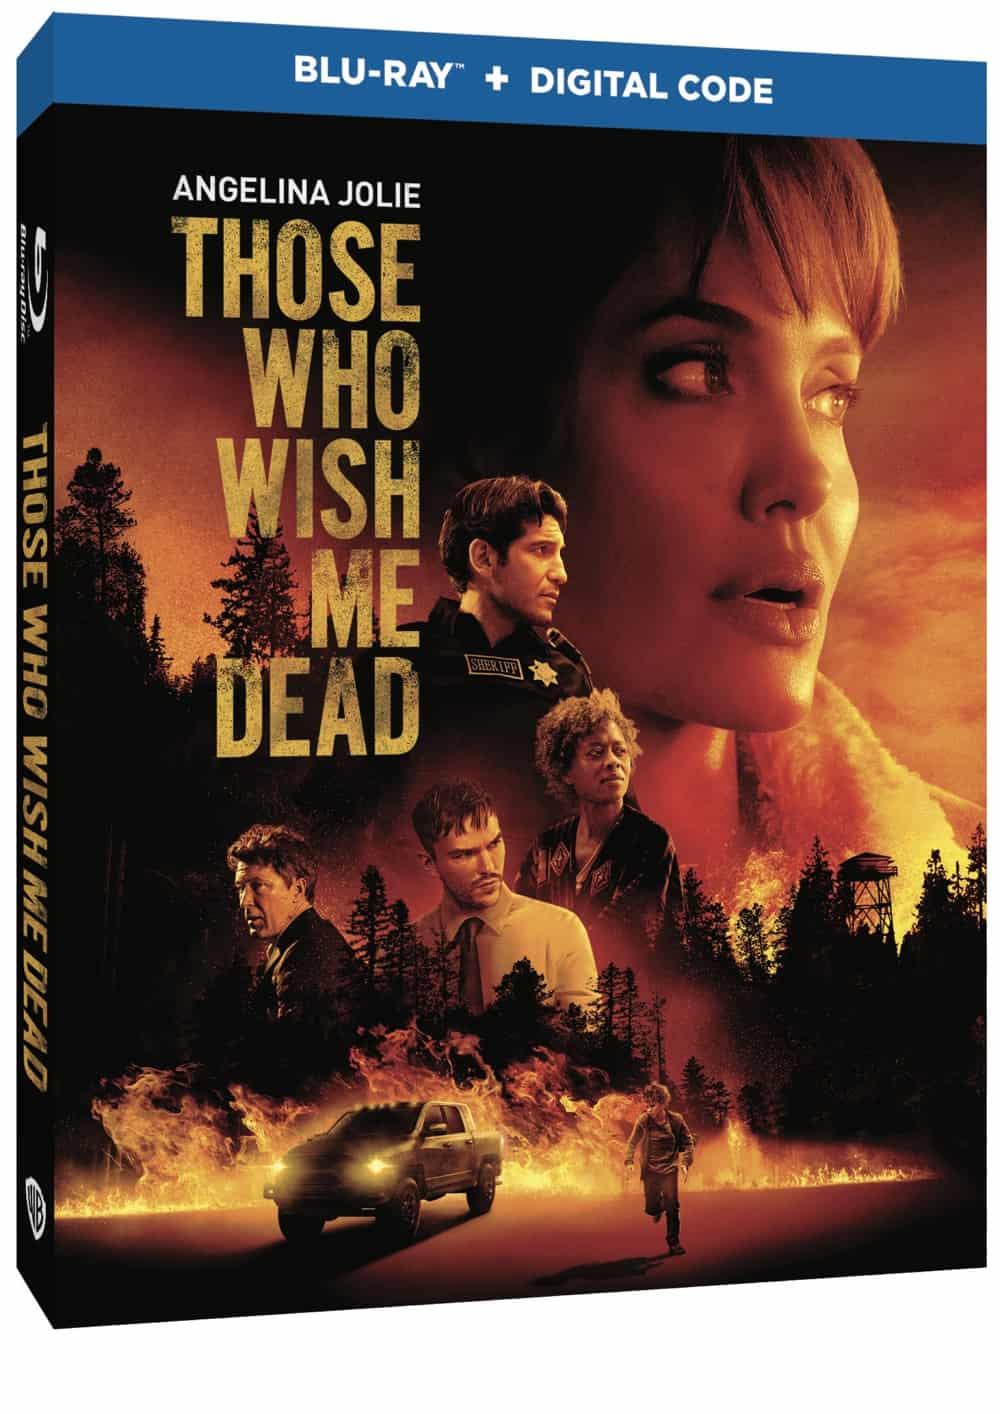 Those Who Wish Me Dead Bluray Cover